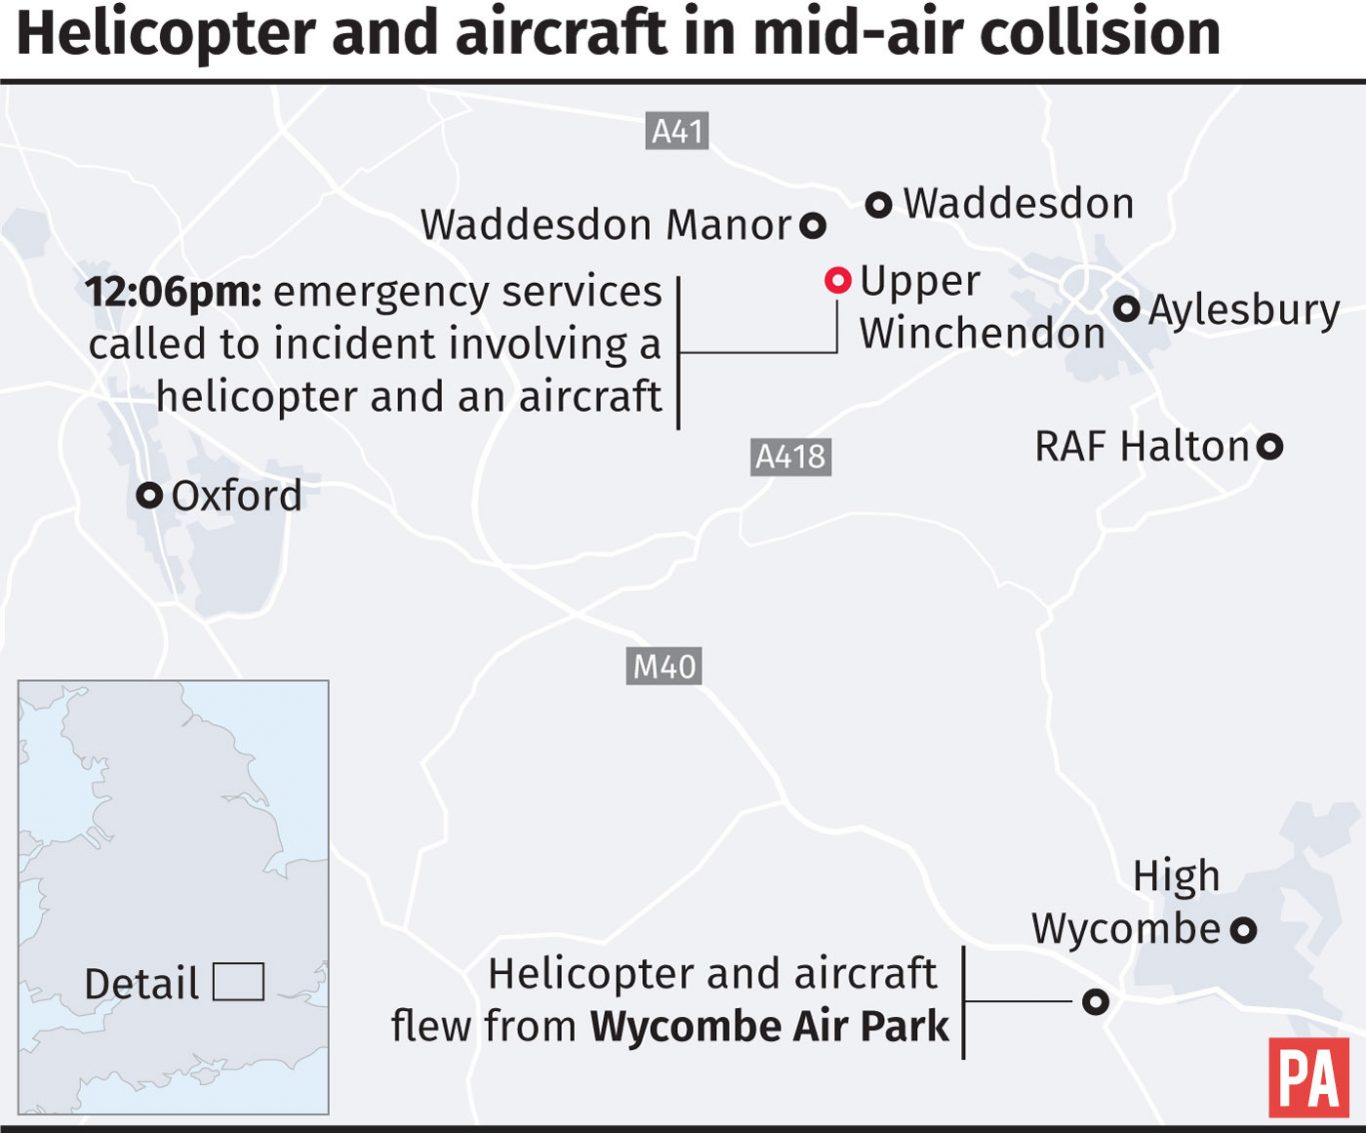 Helicopter and aircraft in 'mid-air collision' over Buckinghamshire